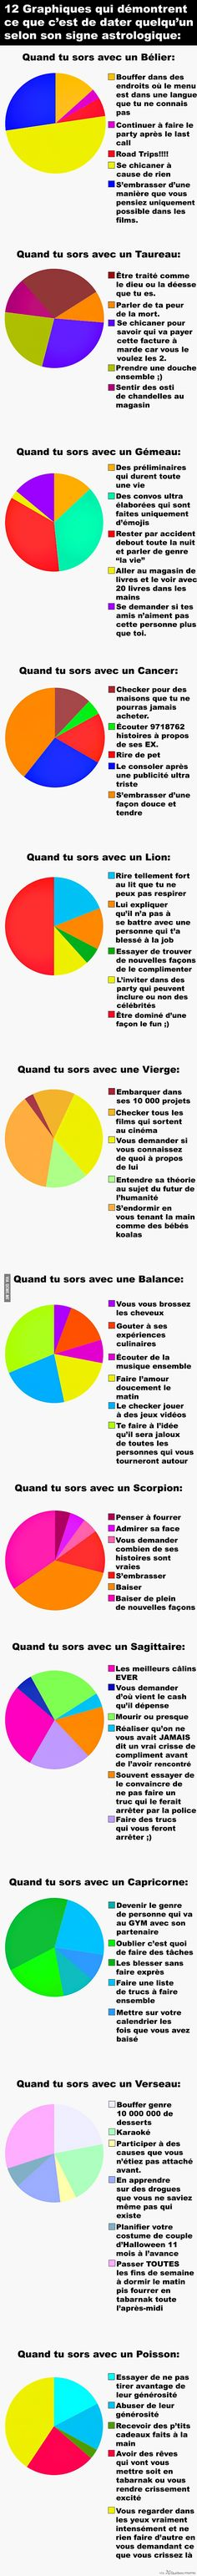 12 best Astrologie images on Pinterest in 2018 Horoscope - a quoi faire attention quand on achete une maison